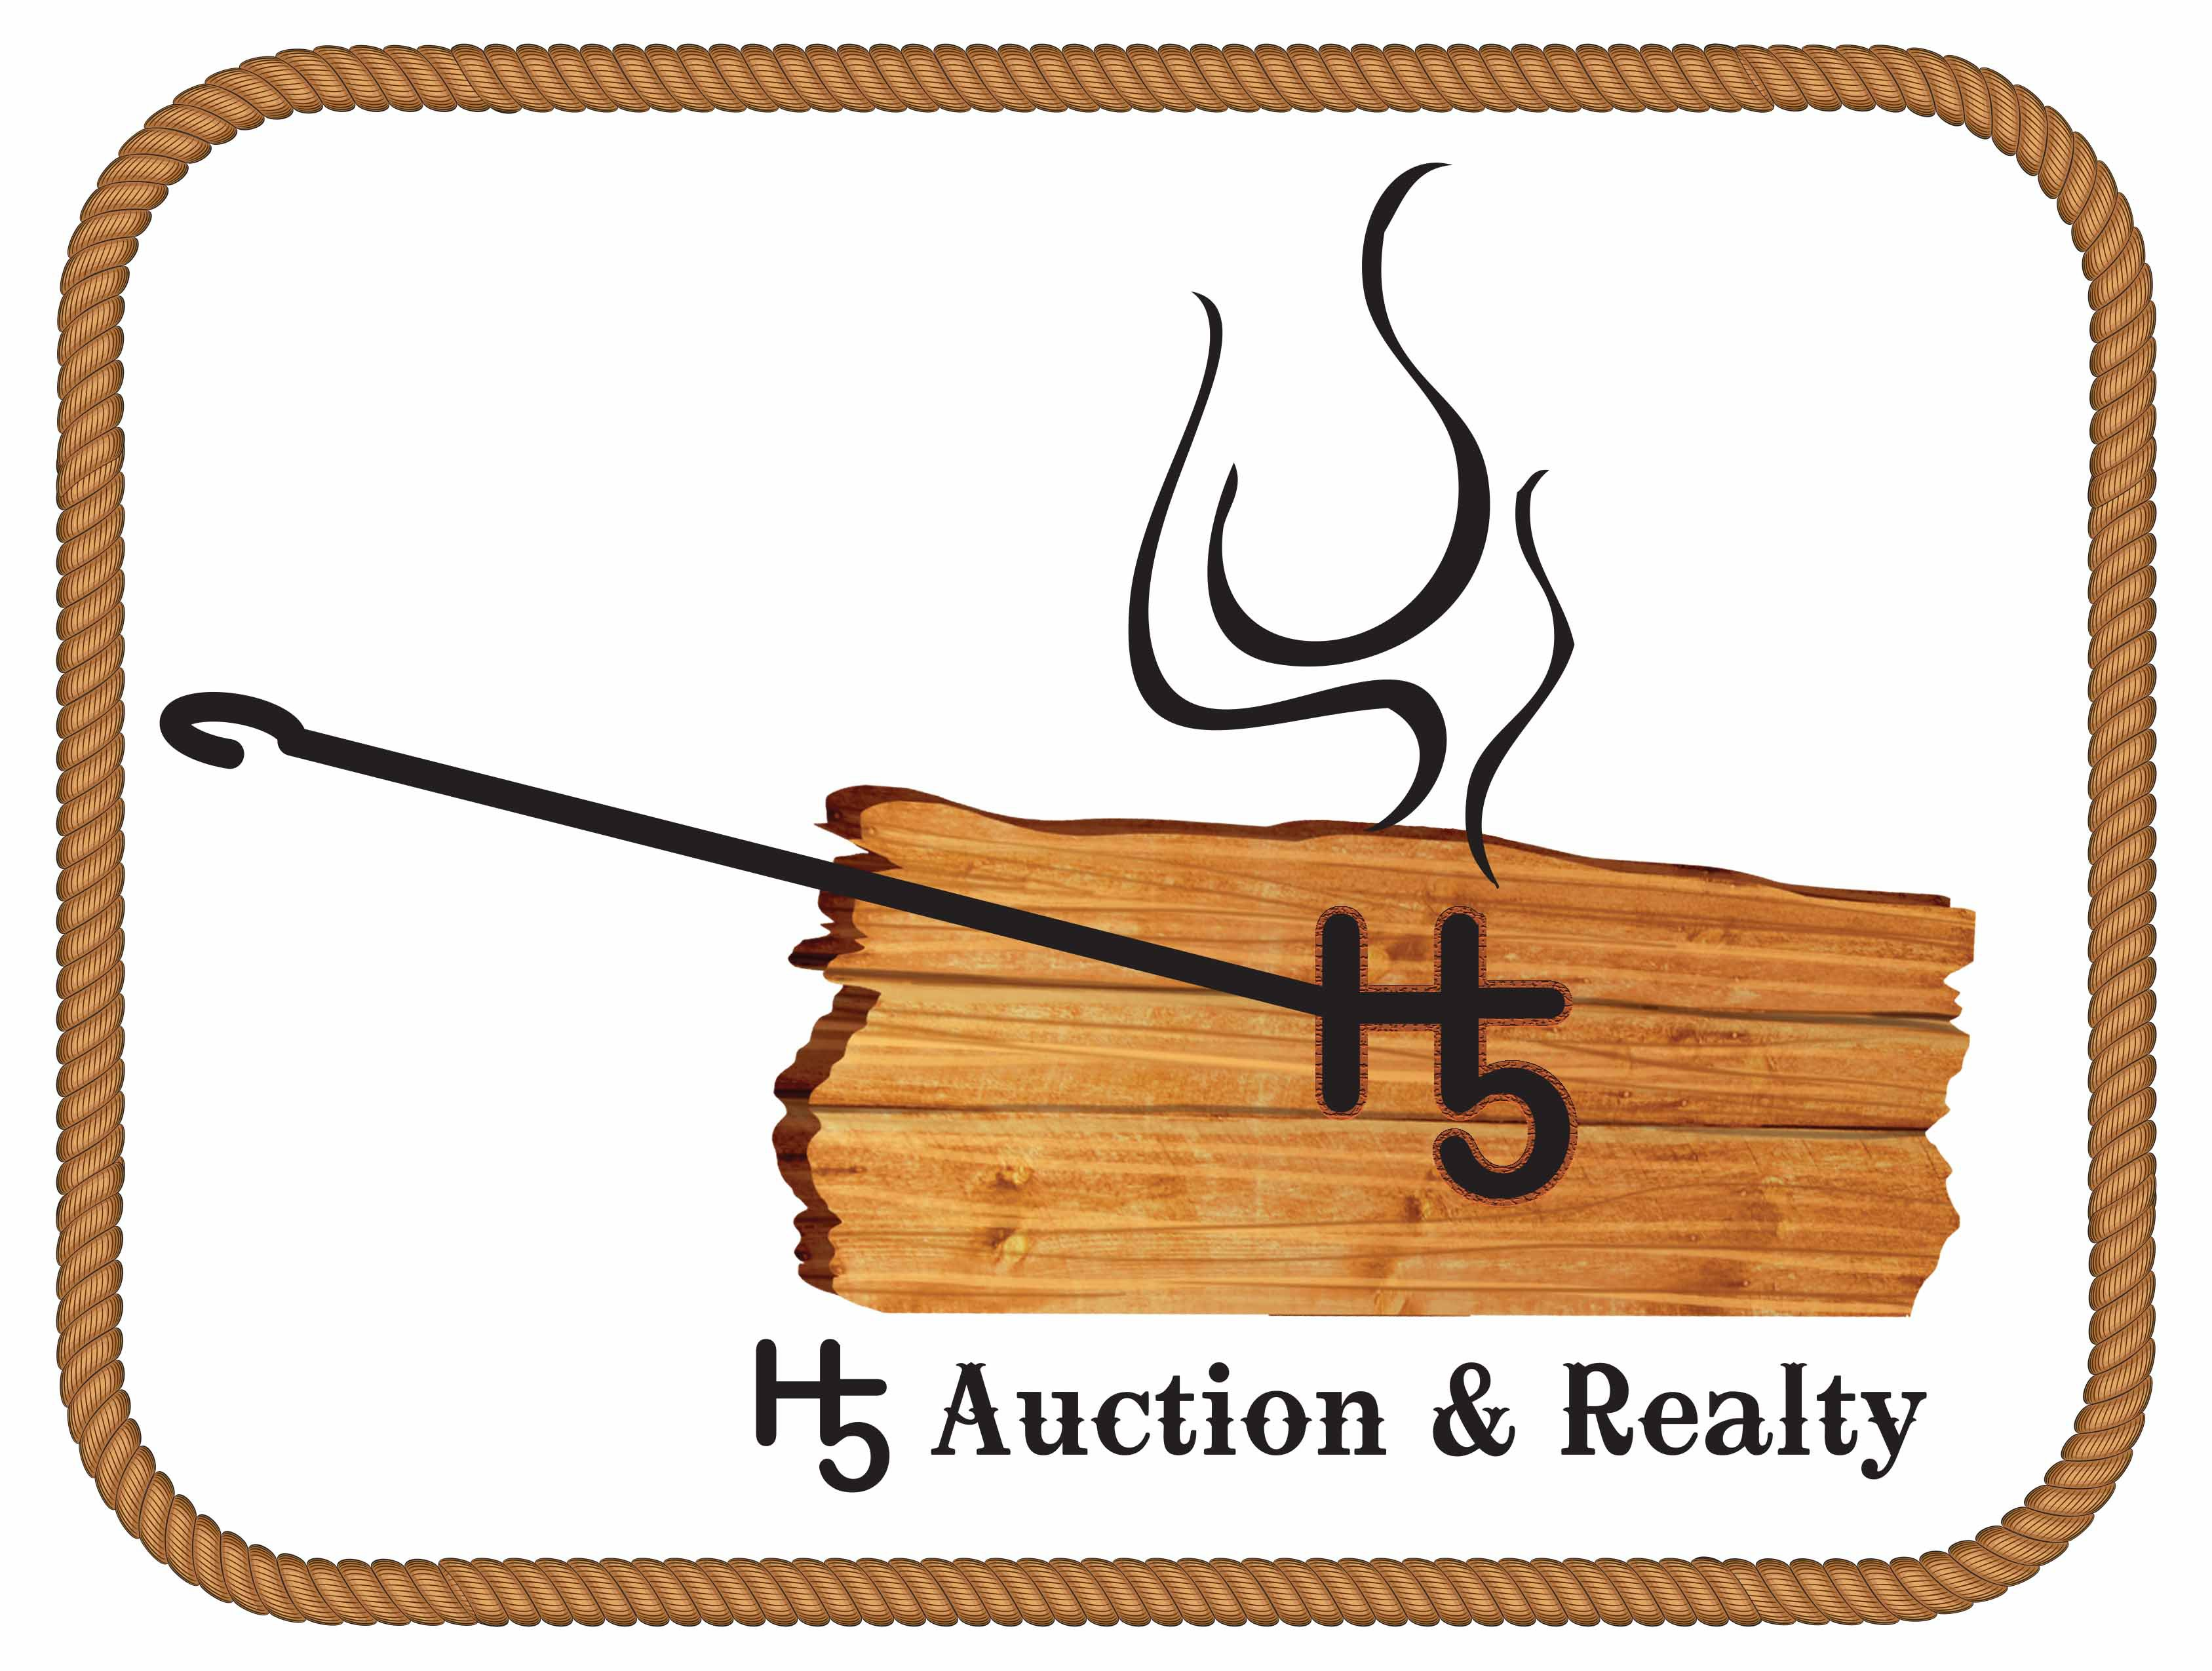 H5 Auction & Realty